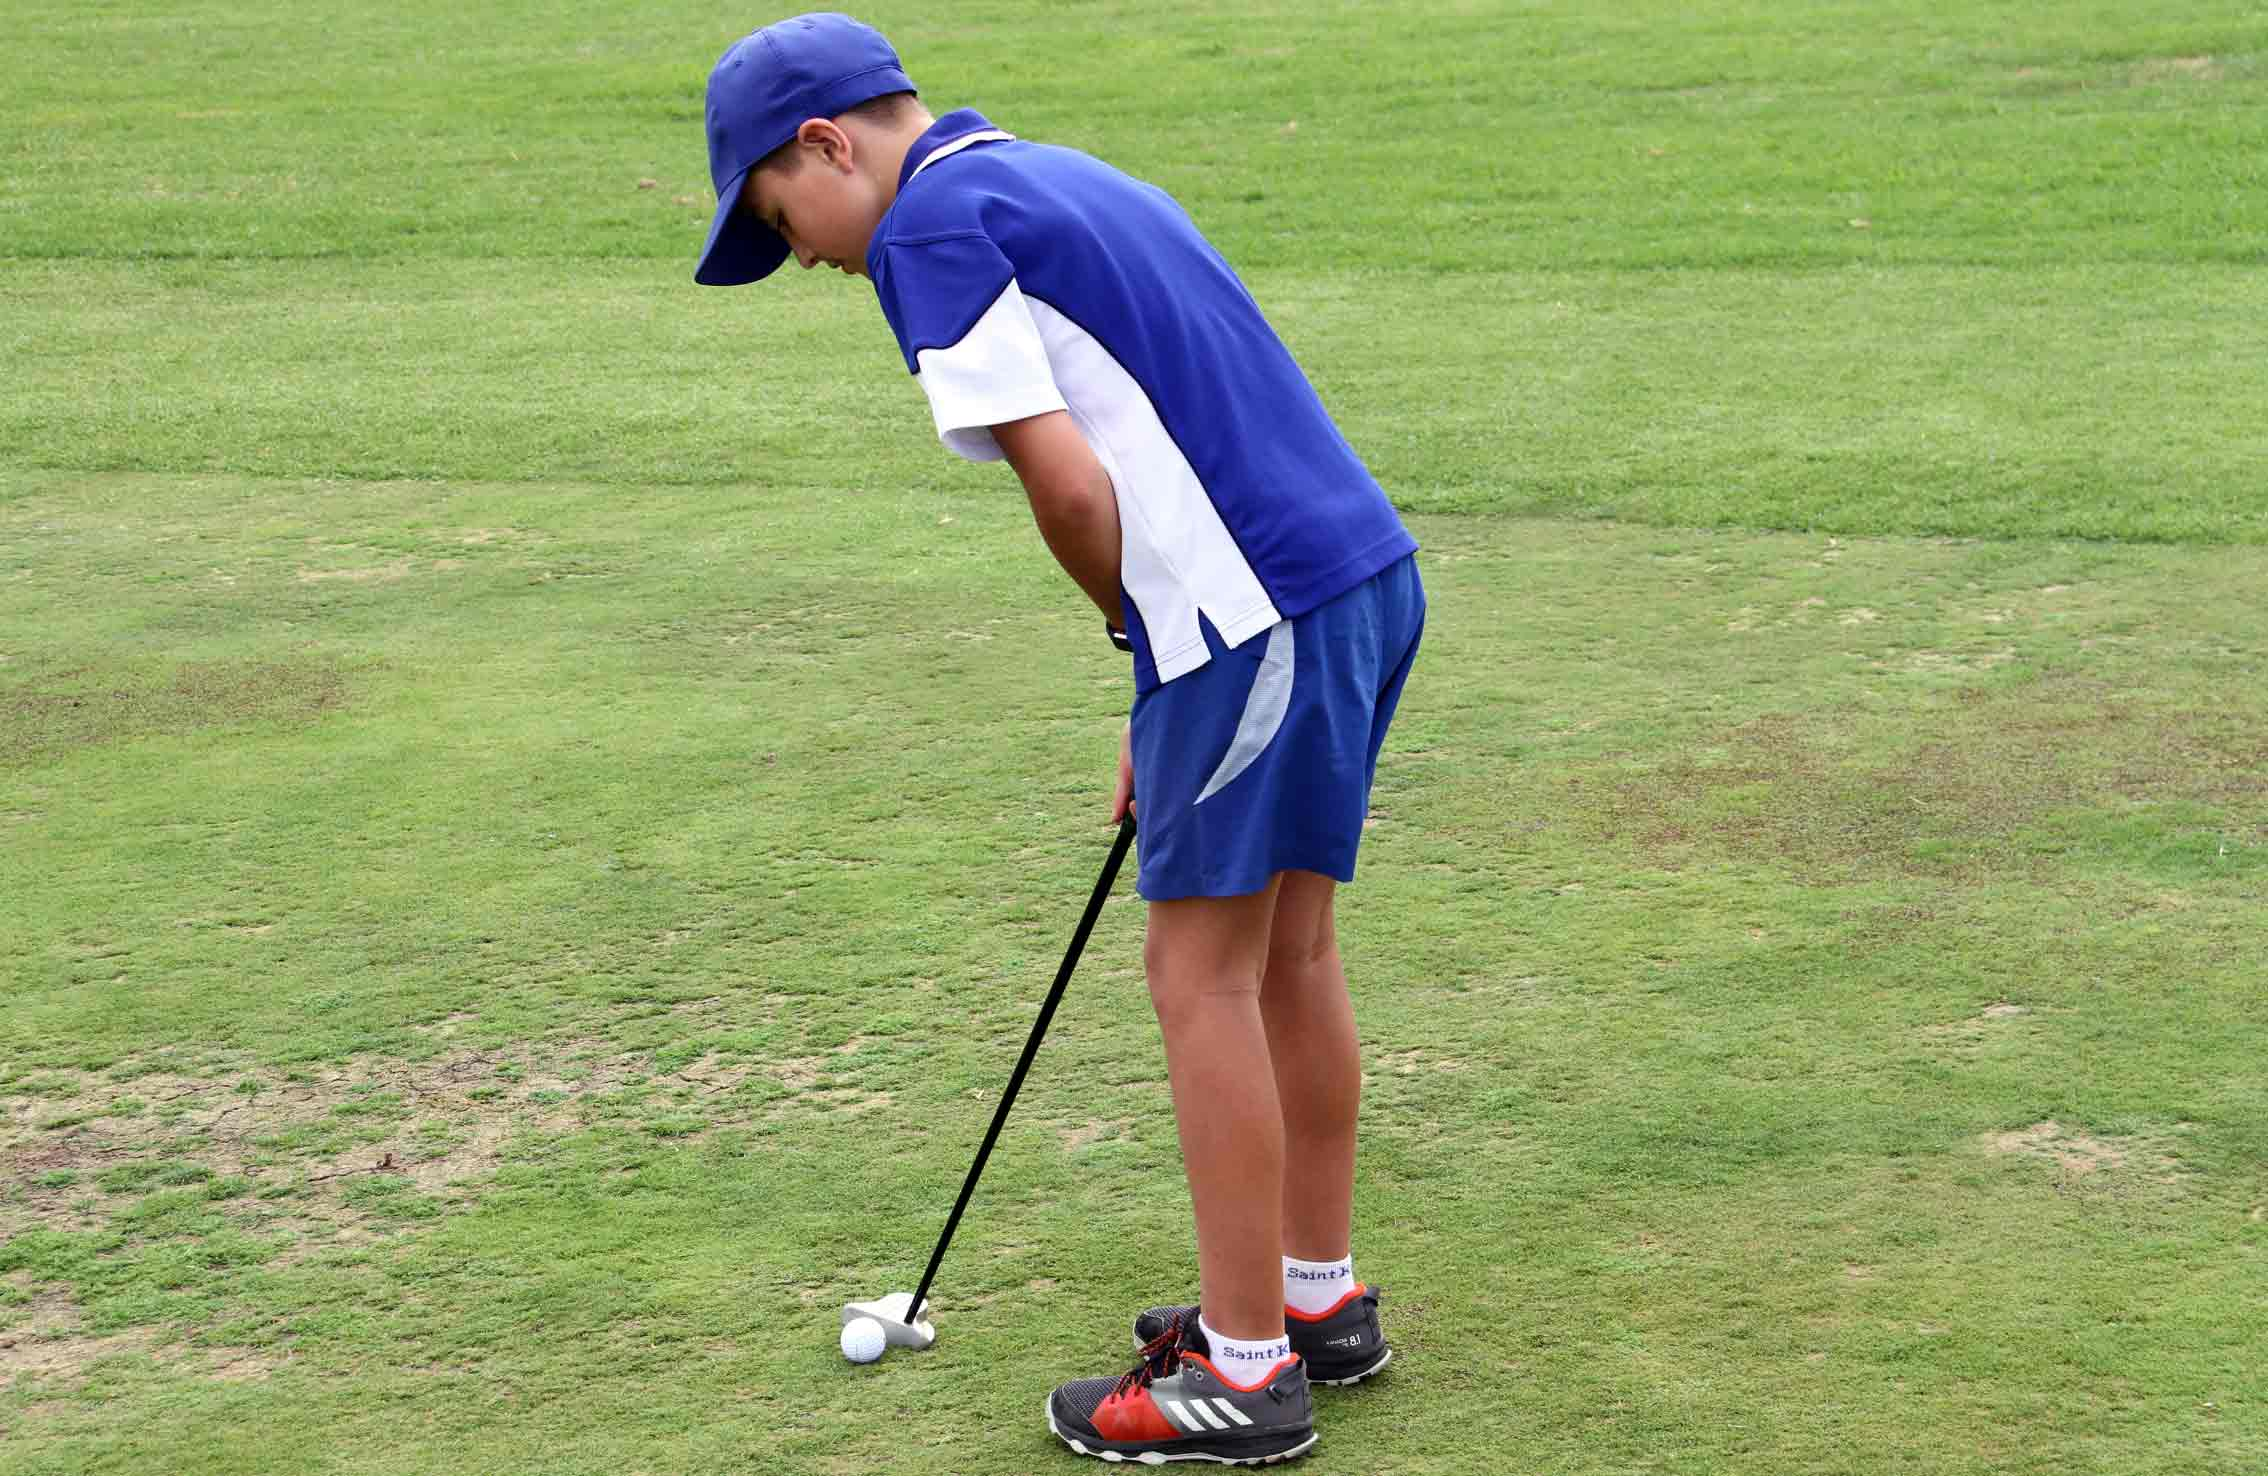 Saint-Kentigern-Boys'-School-Sports-Golf.jpg